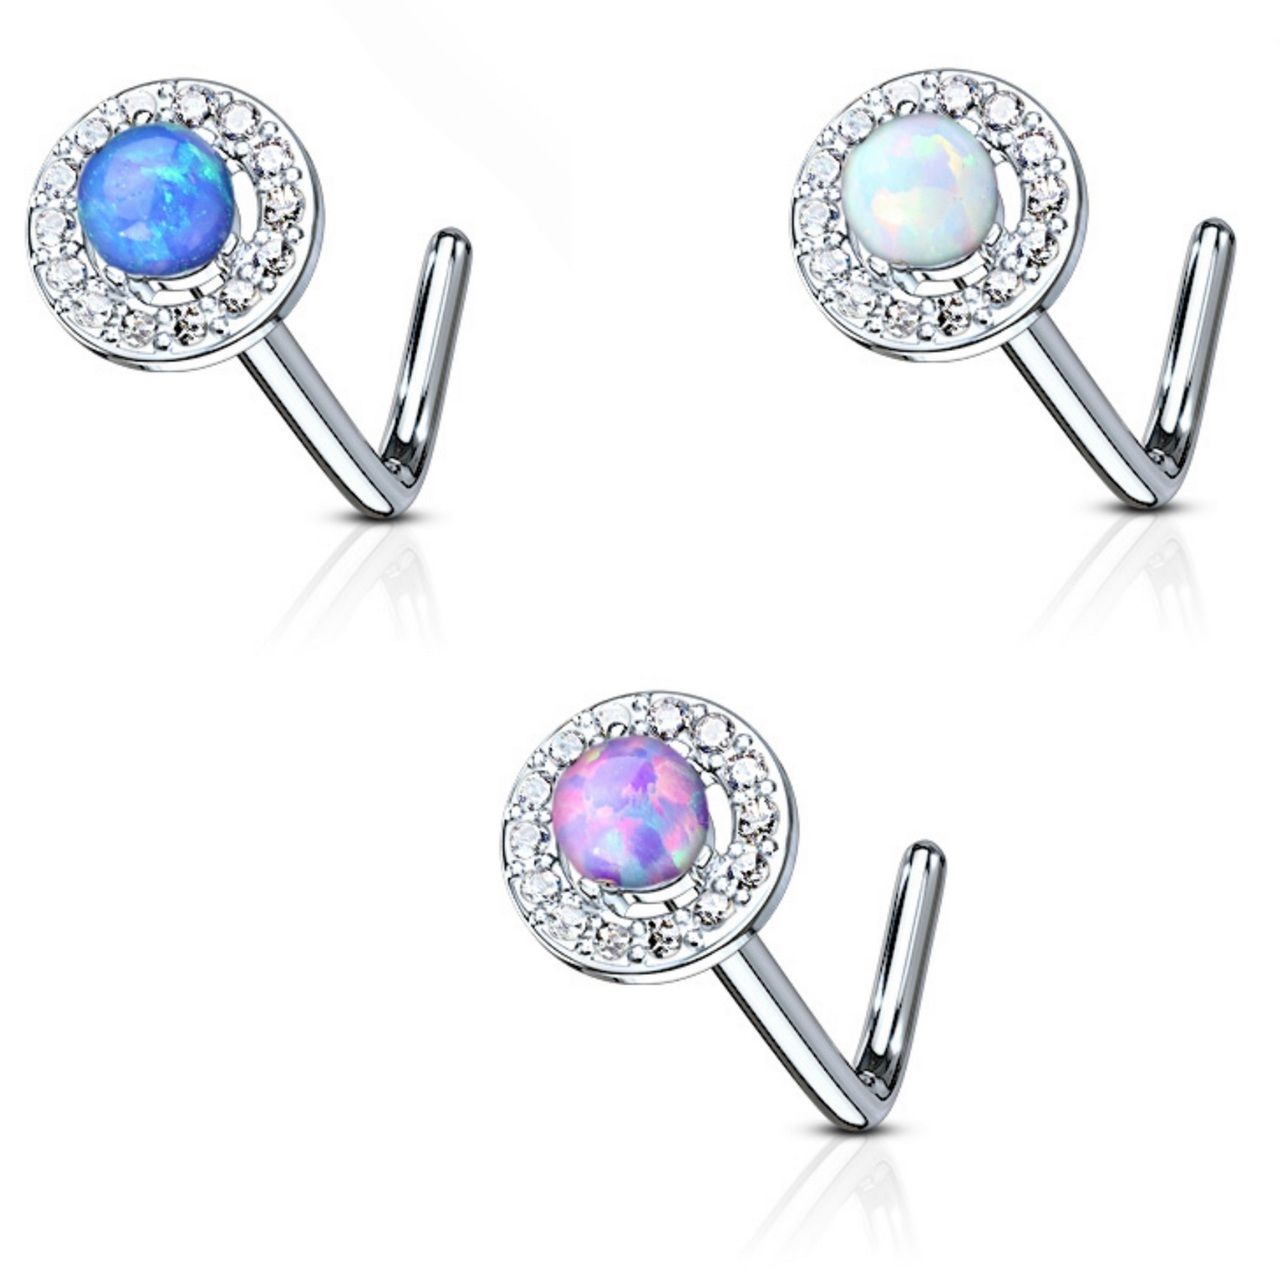 Nose Stud Nose Jewelry L shape 20g Blue Opal Nose Ring Nose Piercing Nose Ring